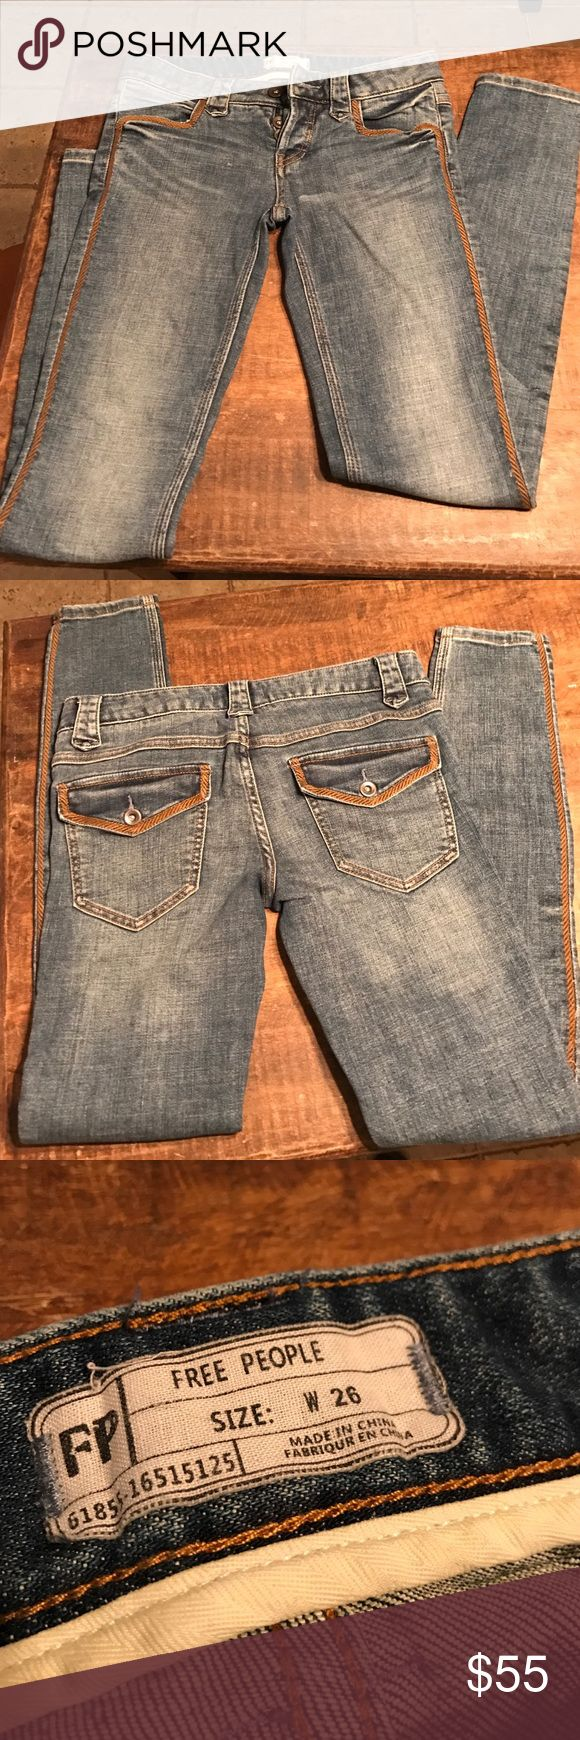 Free People jeans. Sz 26 Cute FP skinny jeans sz 26. Button Fly with brown piping down each leg and on front and back pockets. Inseam 30. Free People Jeans Skinny